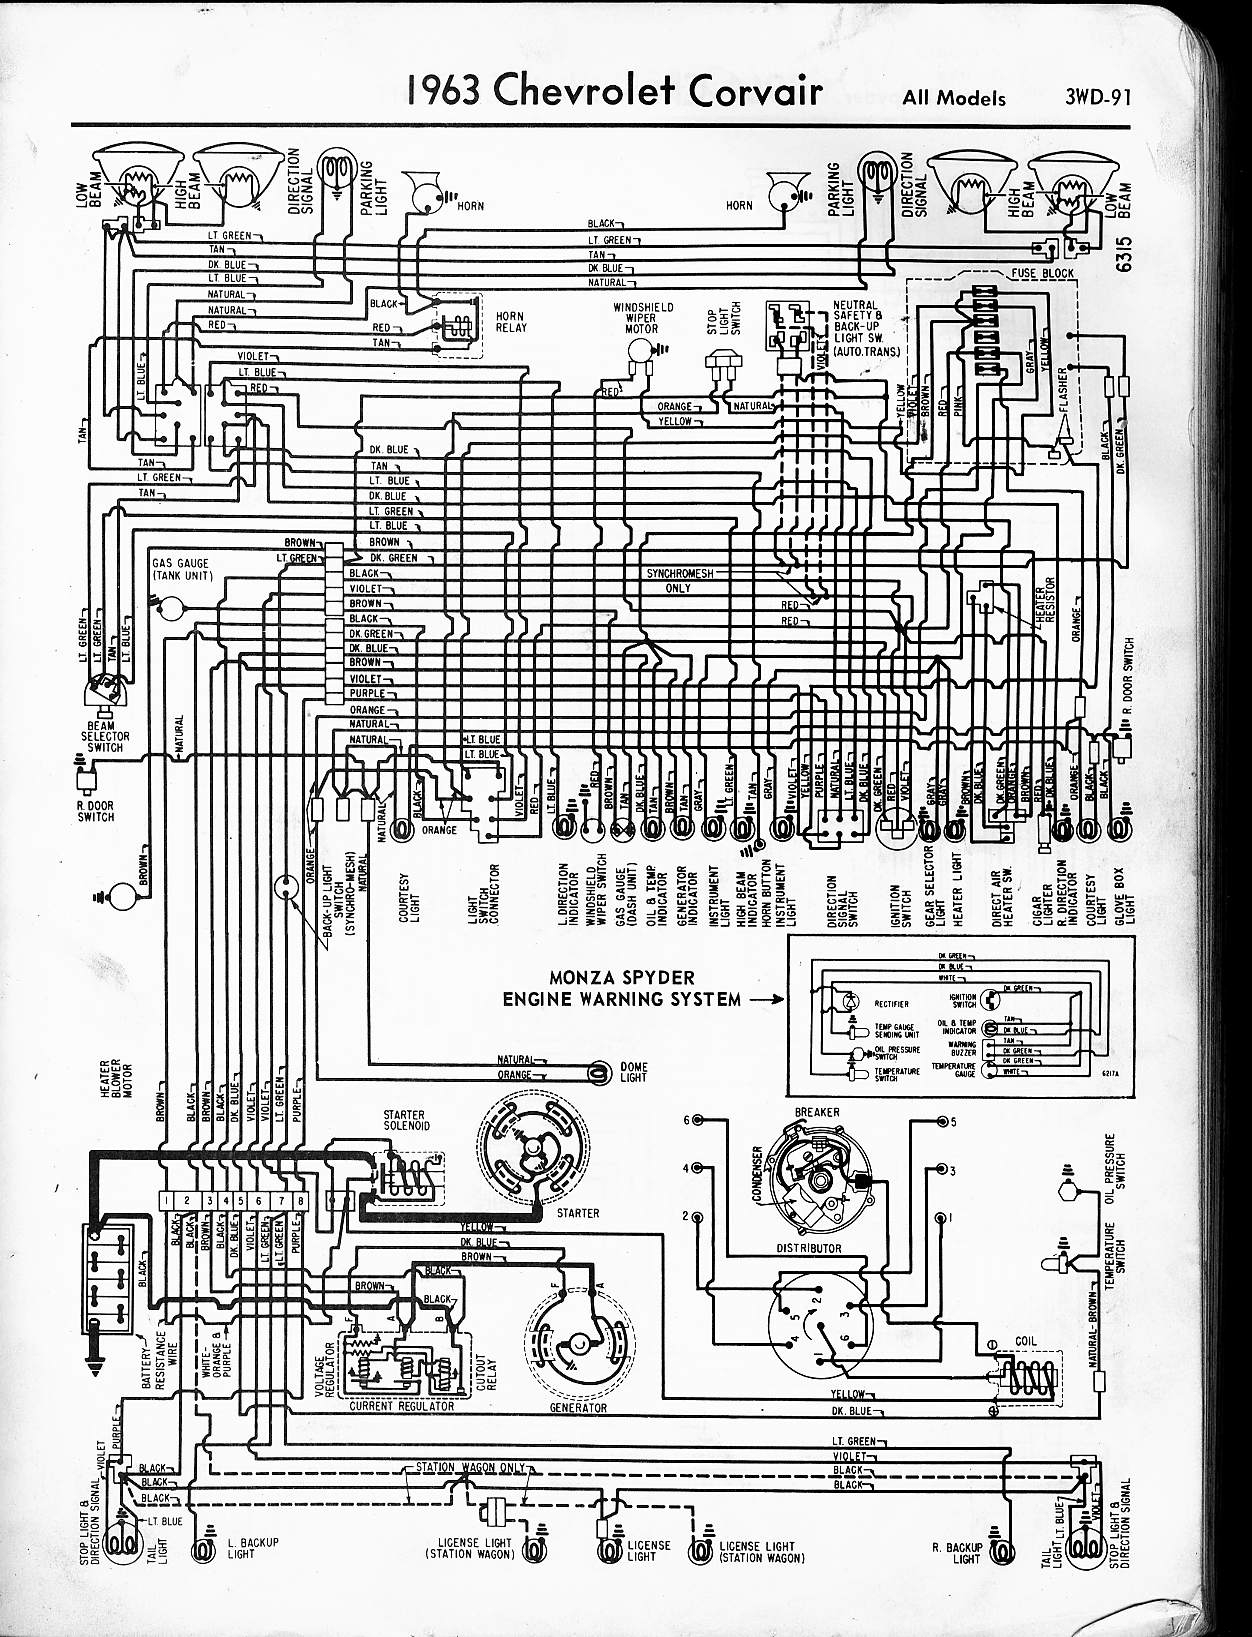 hight resolution of corvair alternator wiring diagram wiring diagram article review 1963 corvair wiring diagram wiring diagram info1963 corvair